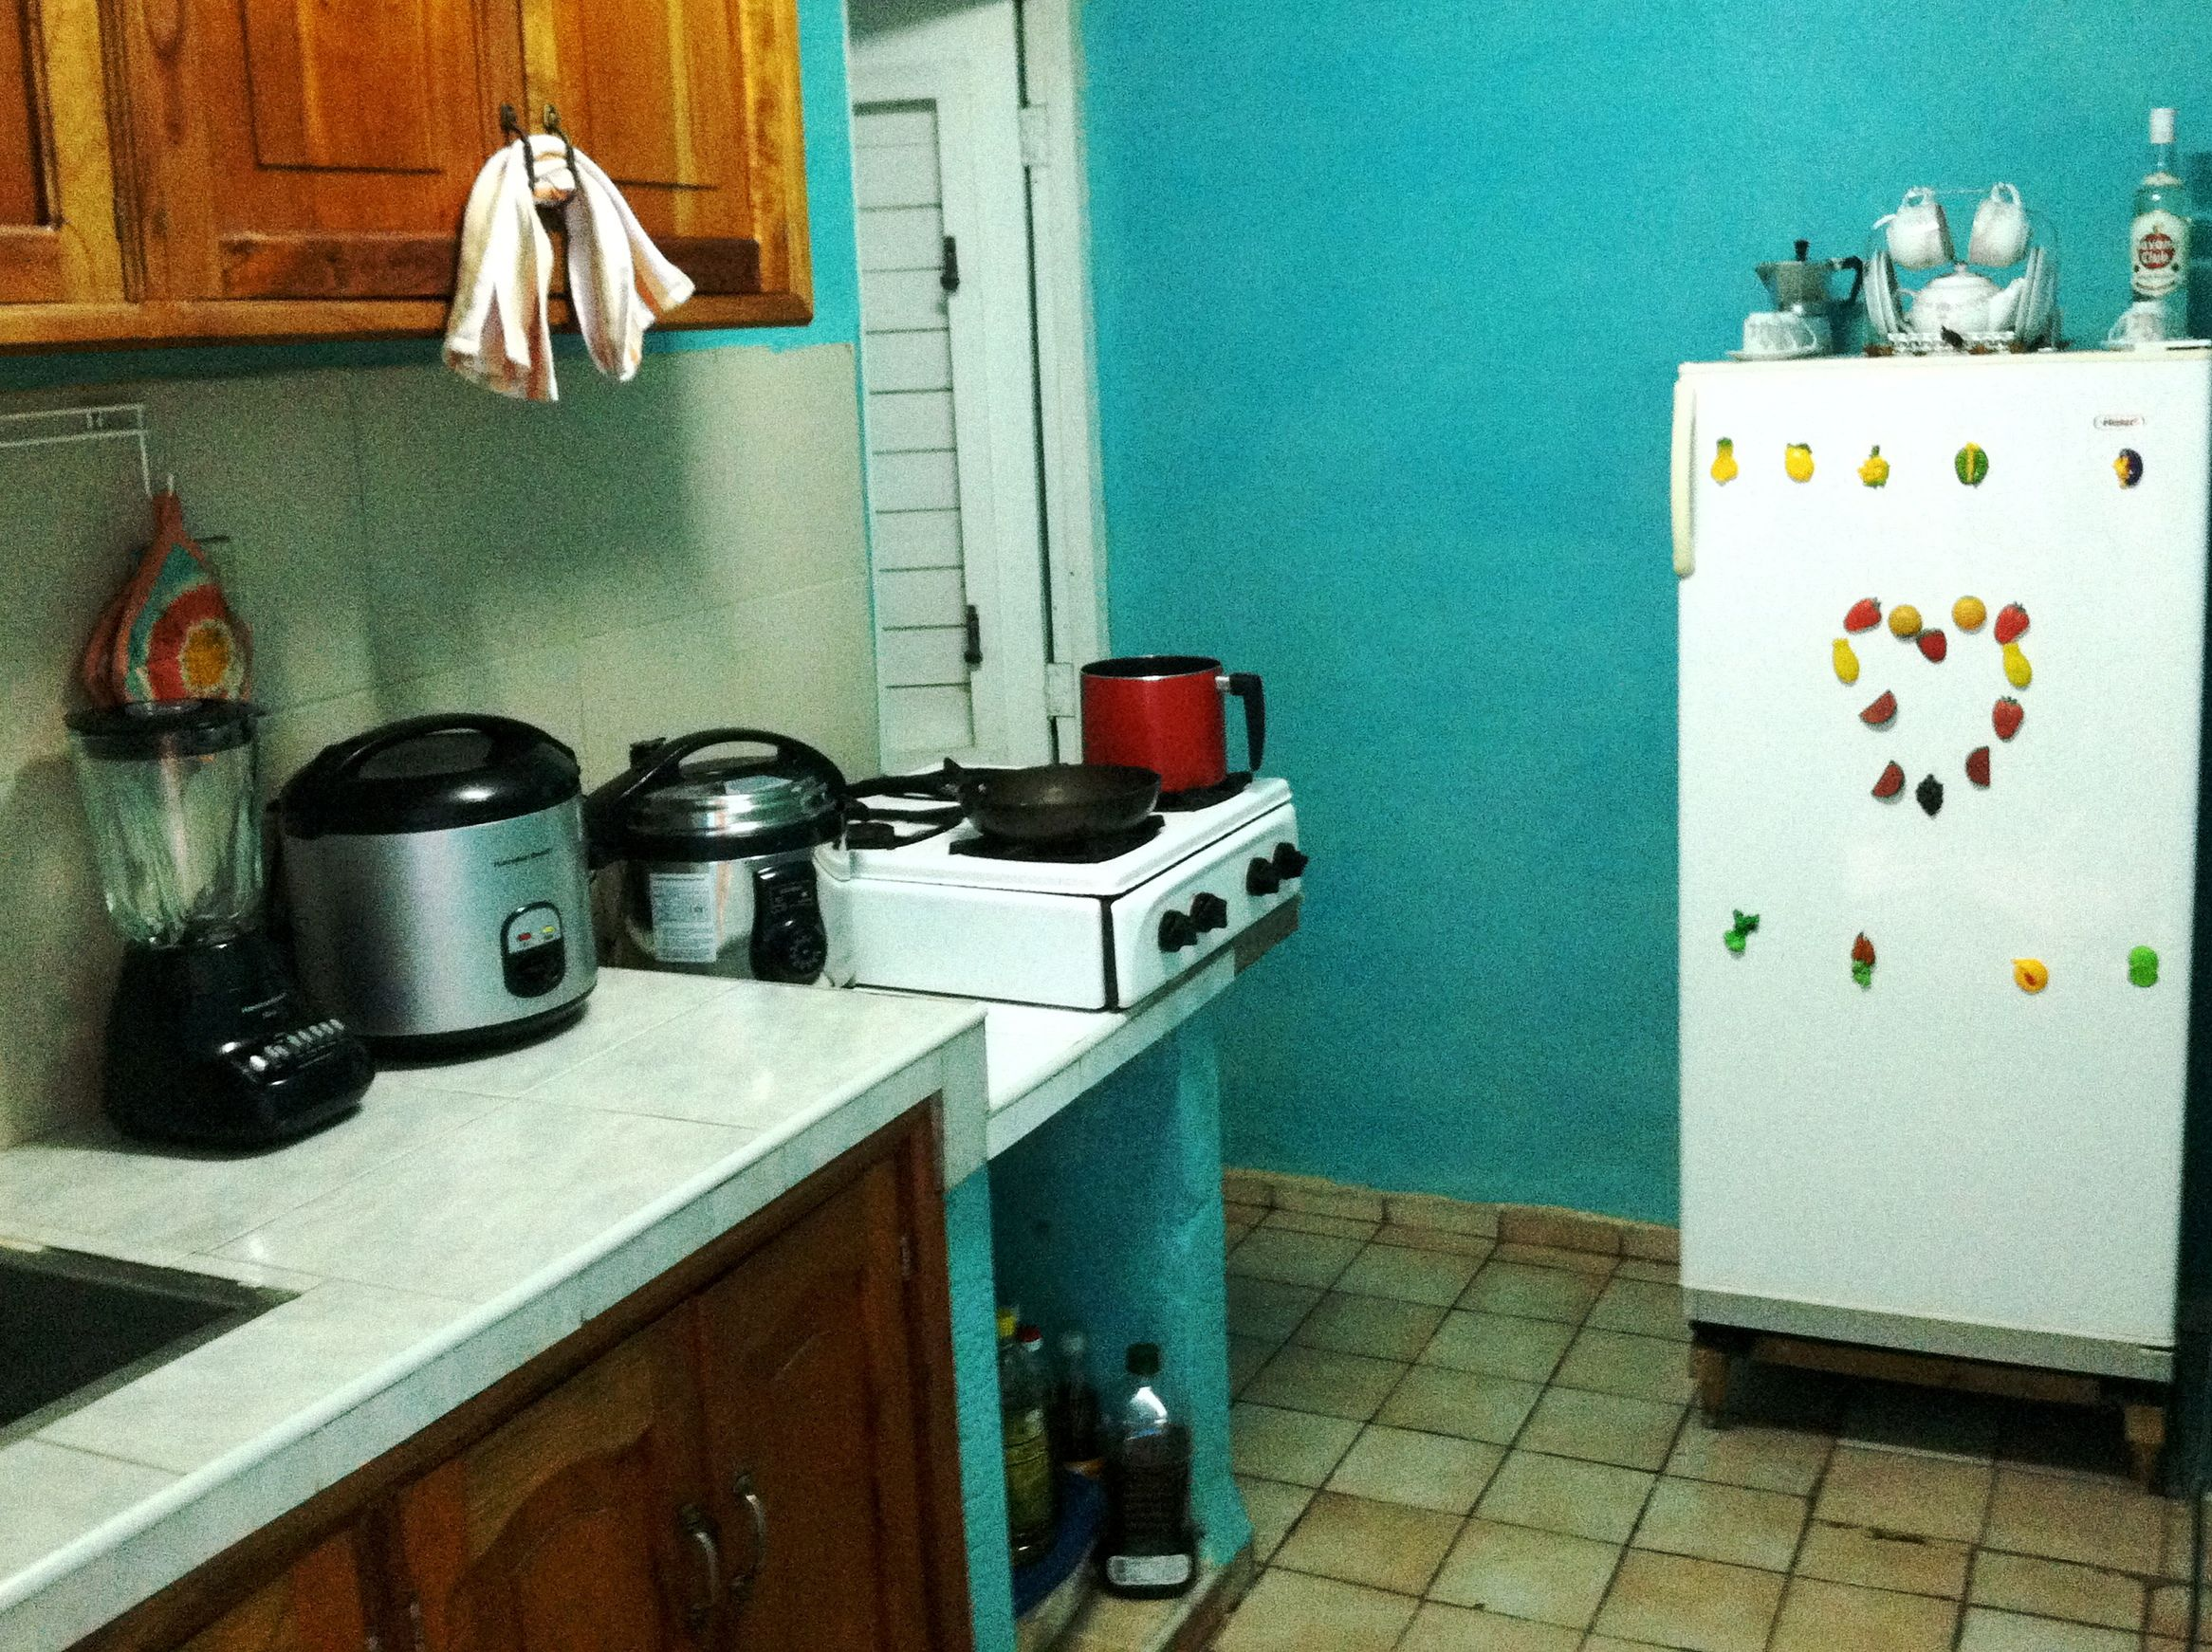 The Basics of the Cuban Kitchen | Cuba | Pinterest | Havana